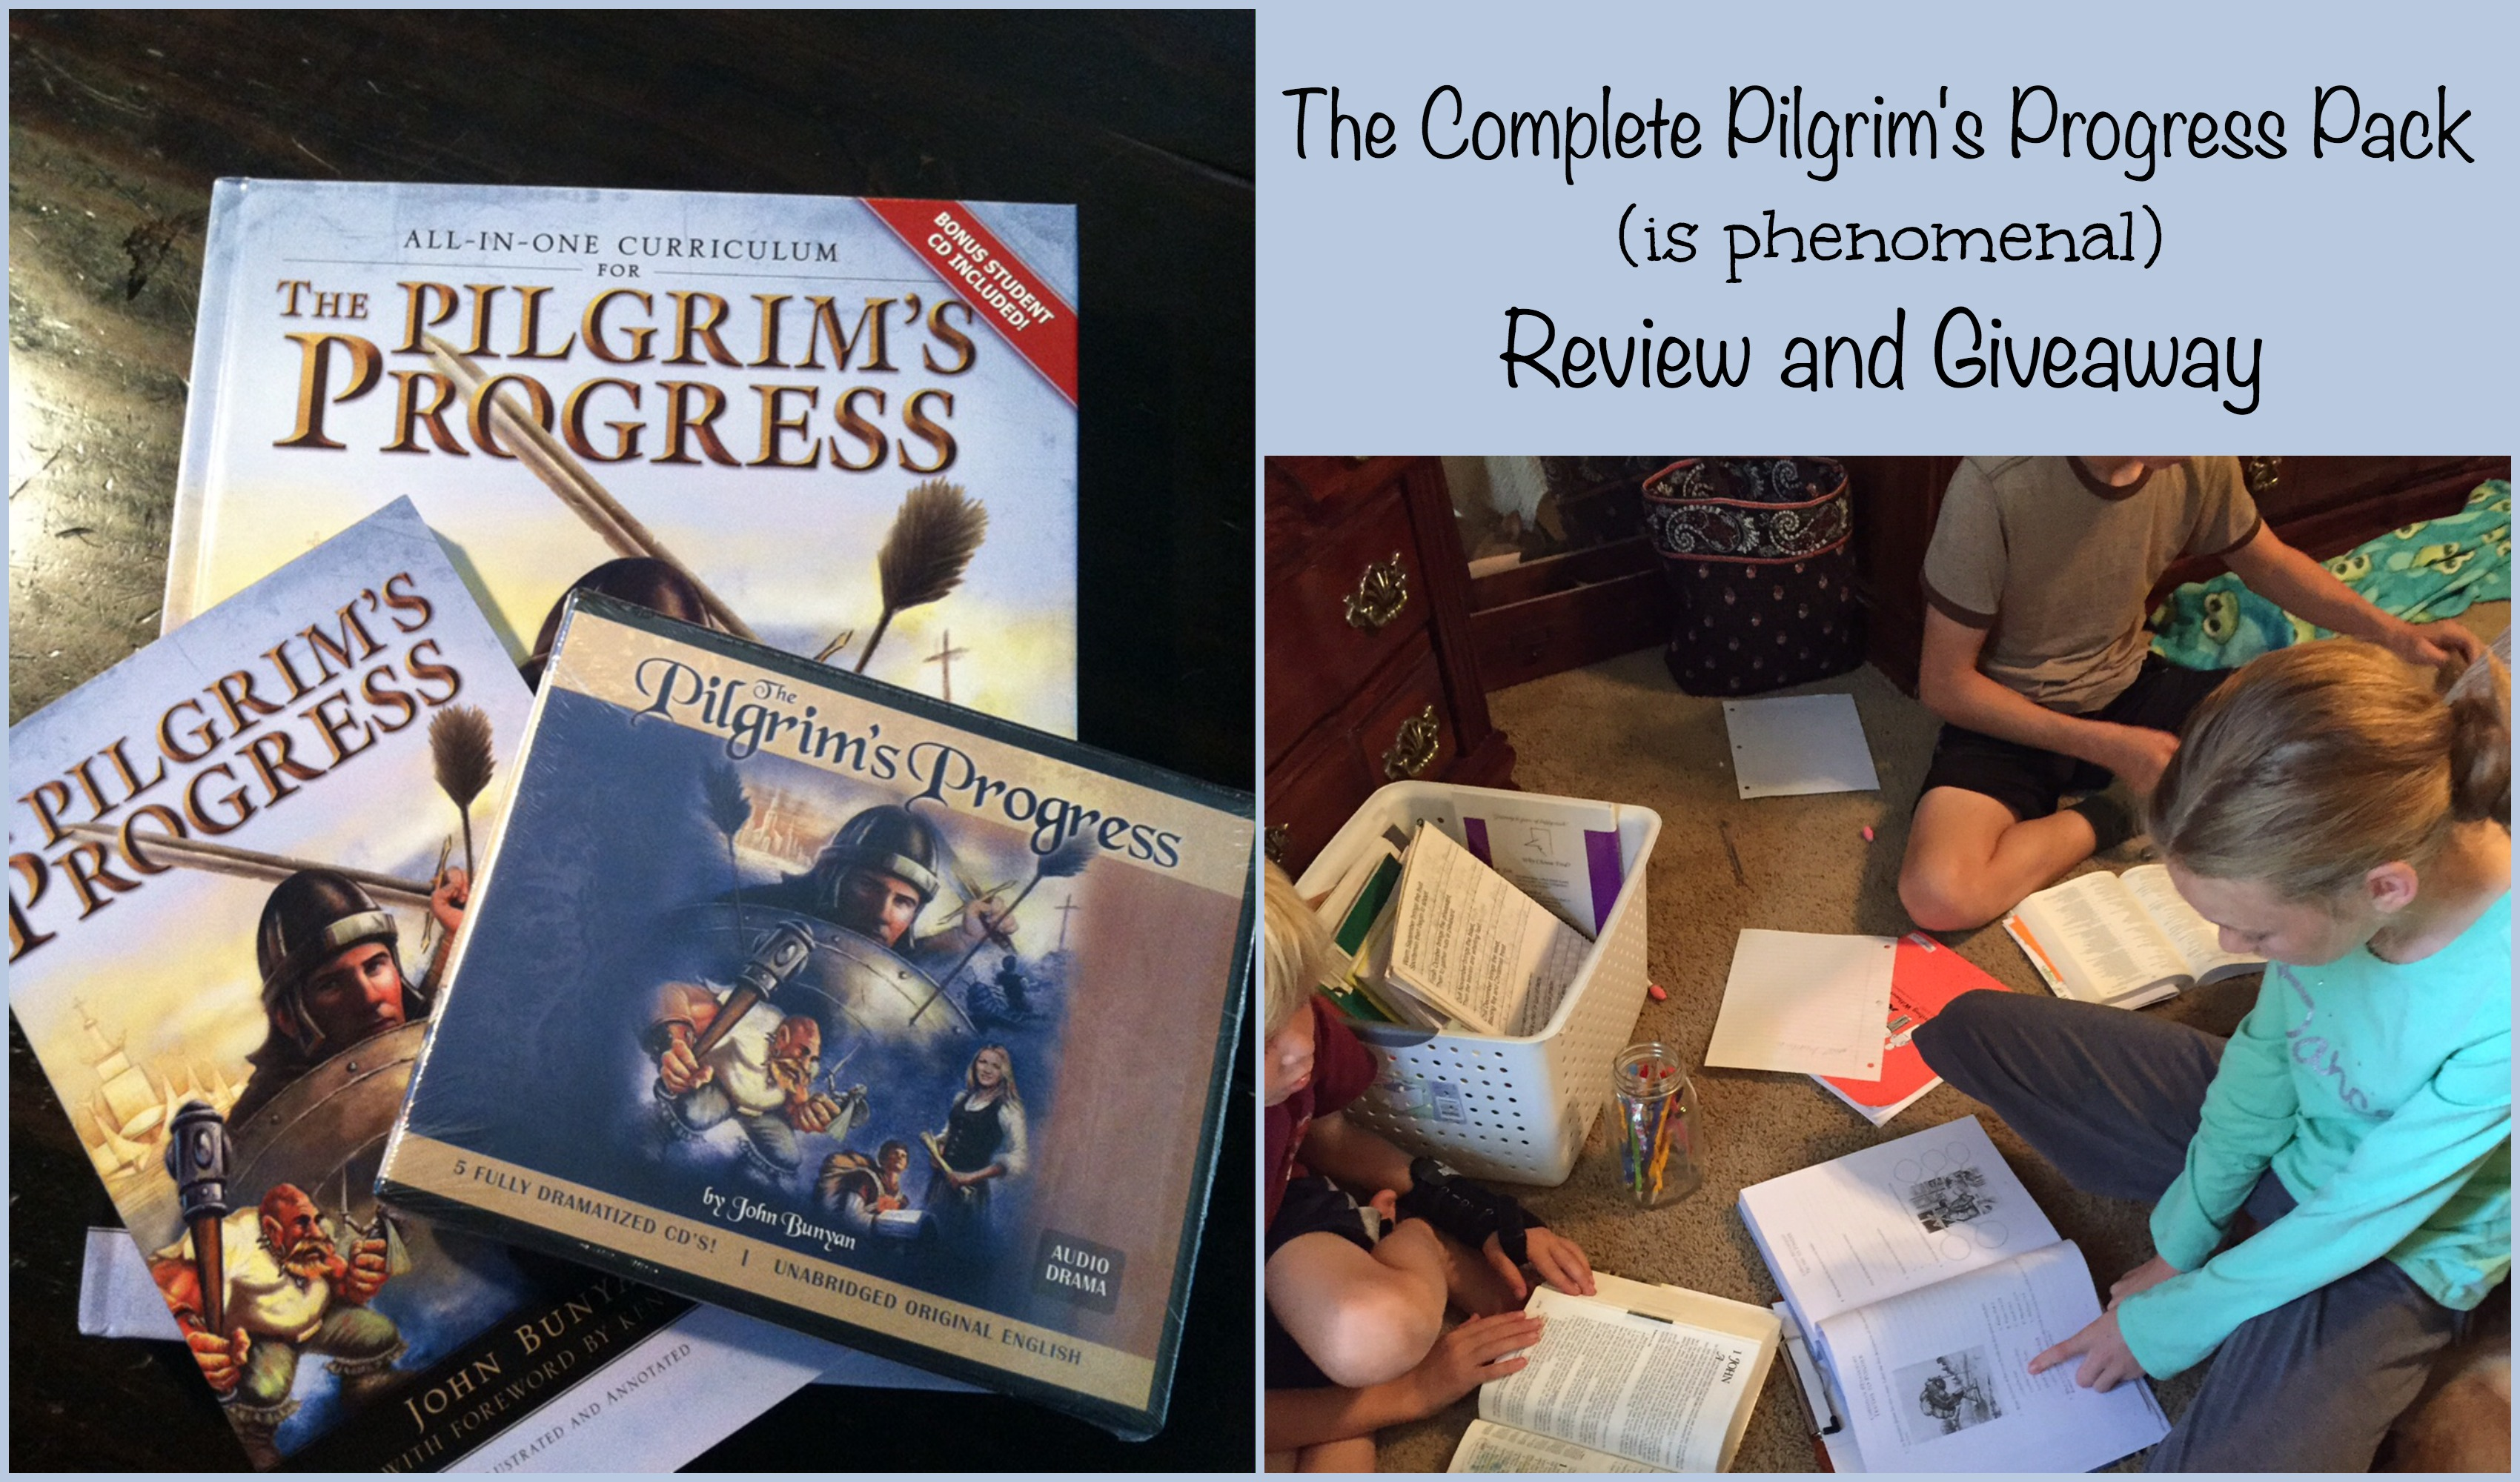 The Complete Pilgrim's Progress Pack Review and Giveaway